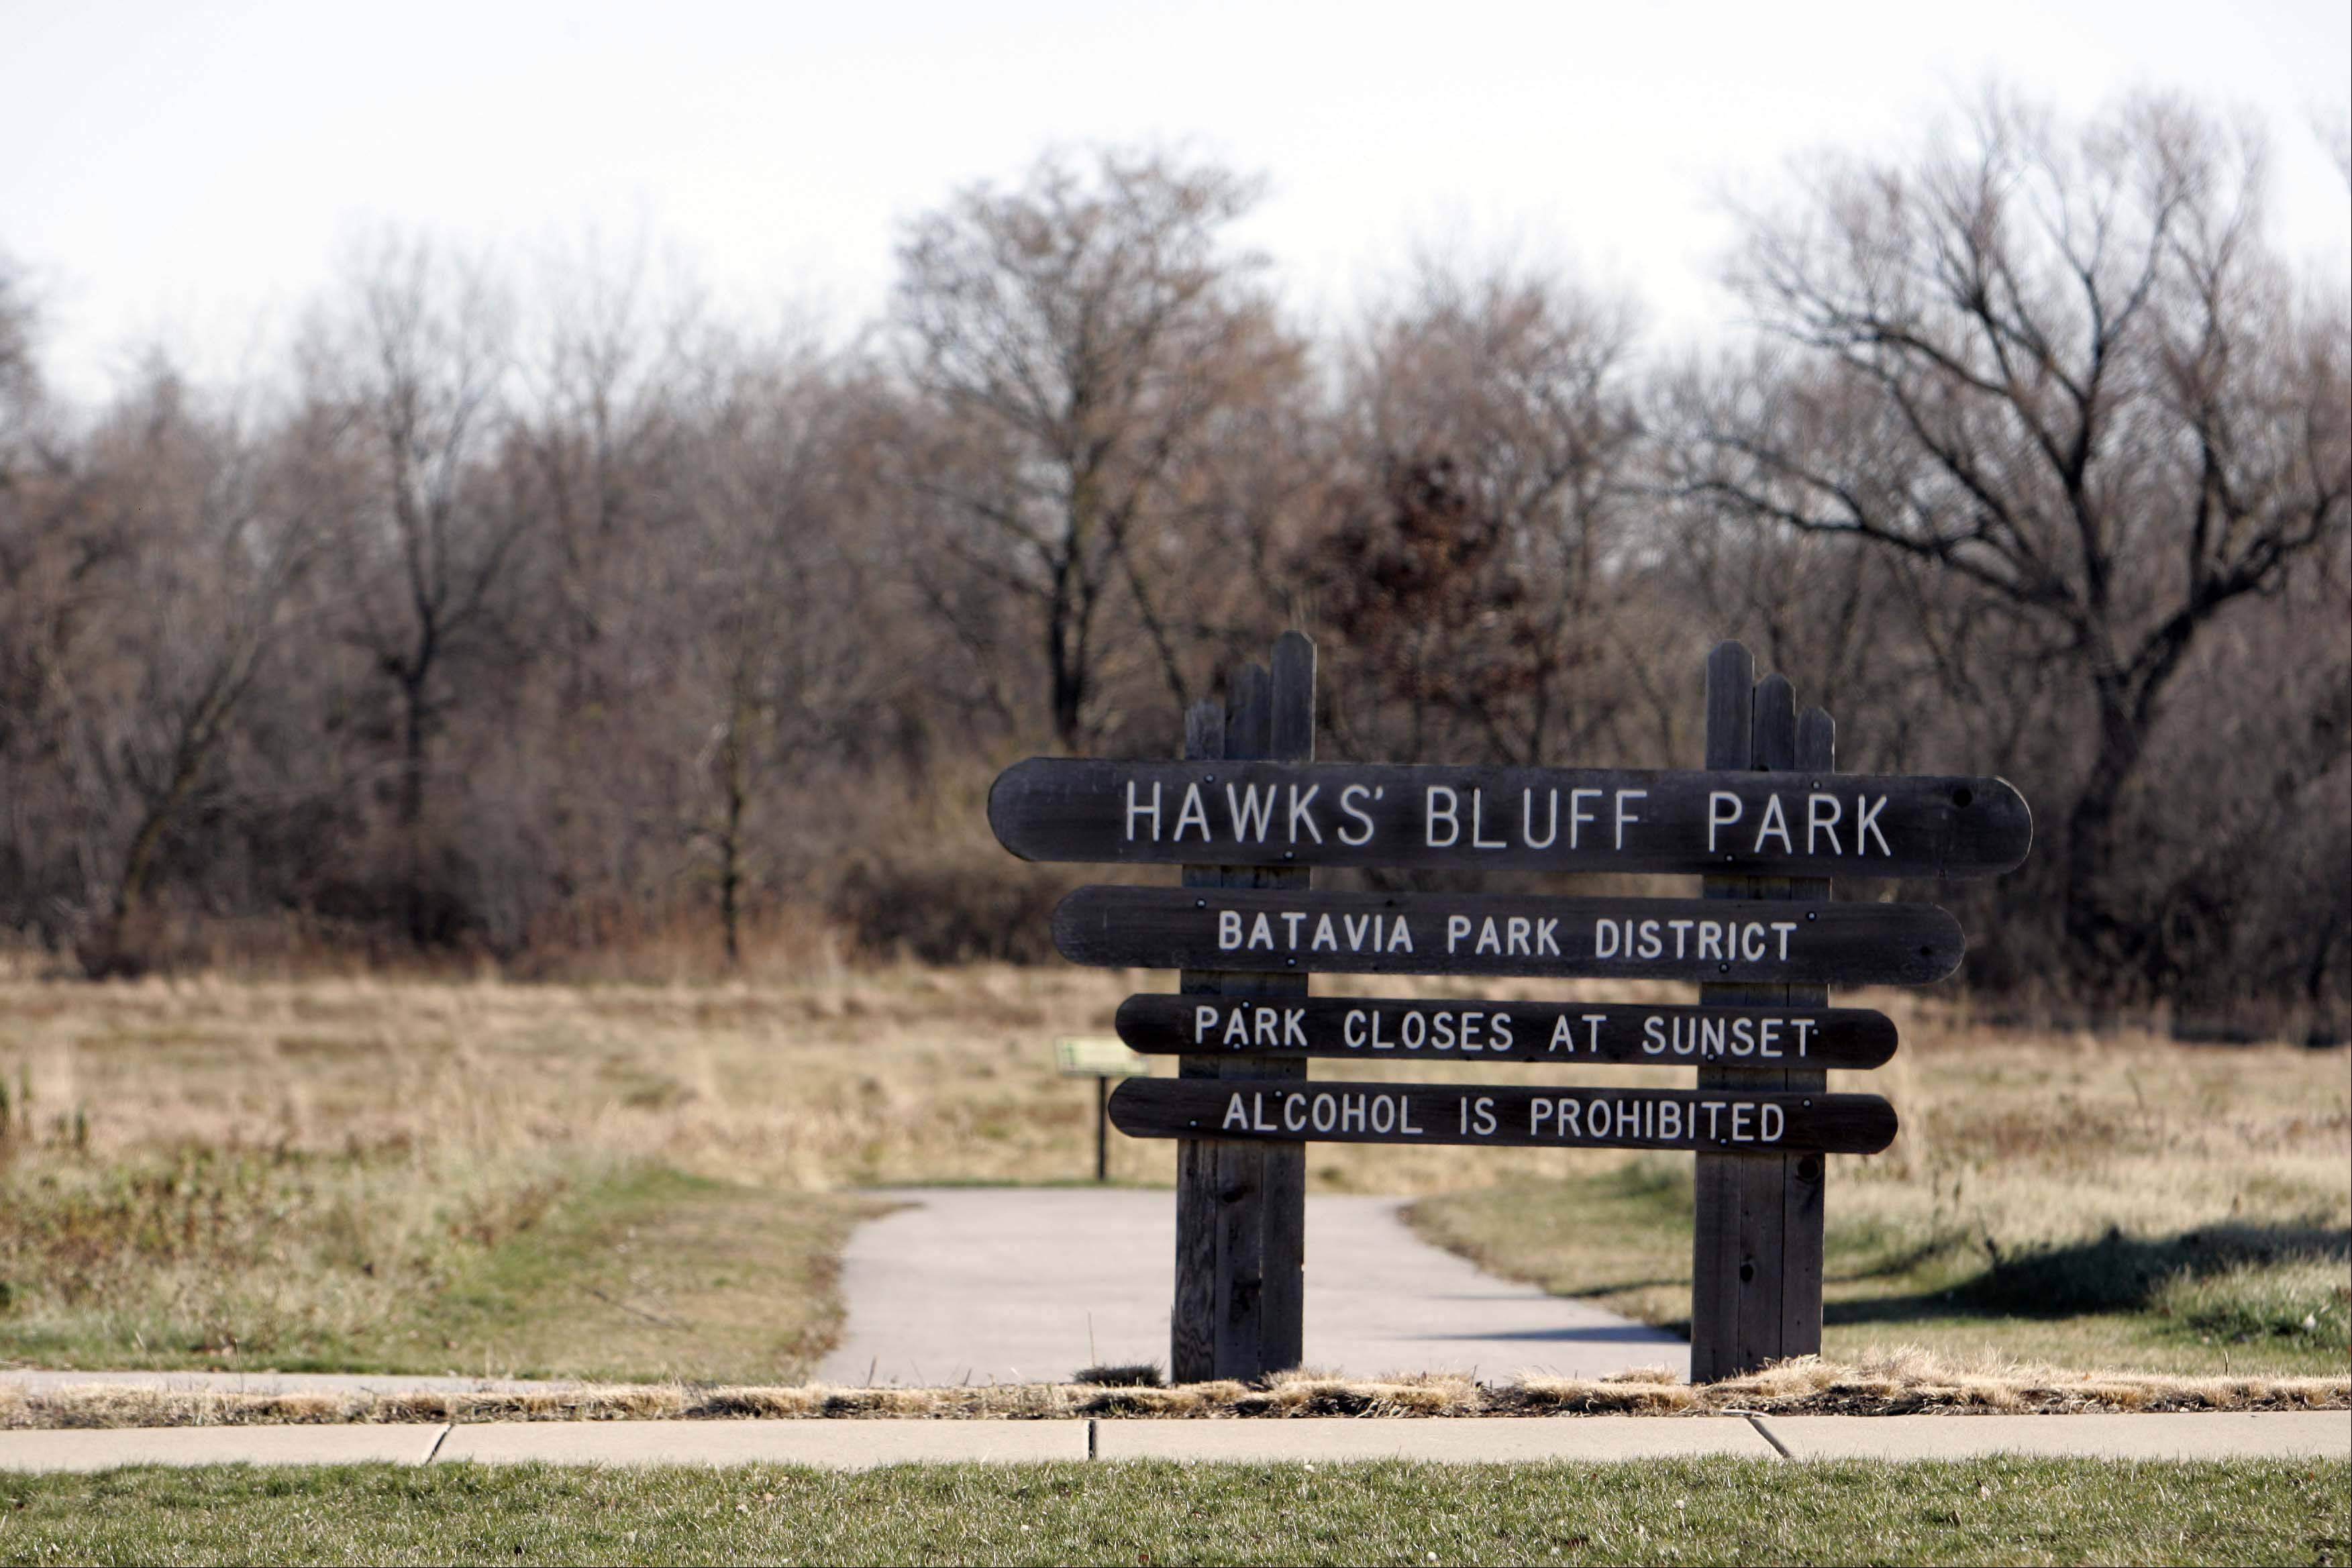 Hawk's Bluff Park is one of several parks in the Tanglewood Hills area in Batavia.